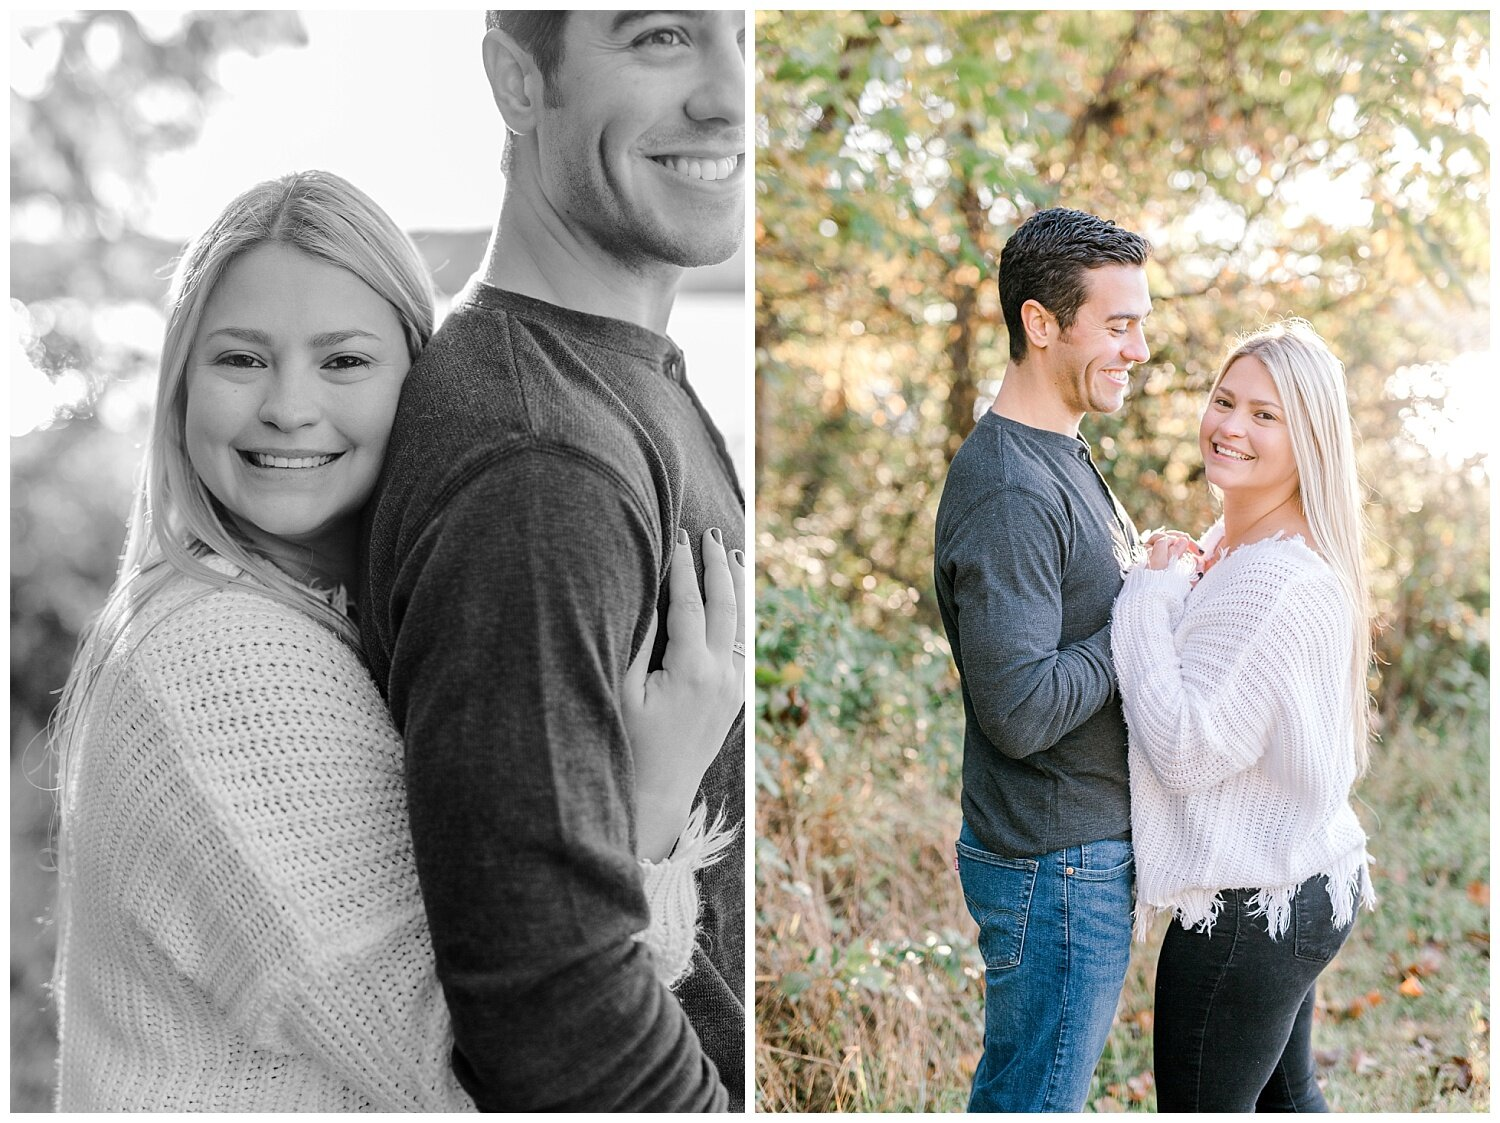 Peace Valley Park Doylestown bucks county PA fall sunrise engagement session  lehigh valley pennsylvania based wedding and lifestyle photographer Jeannie Lytle of Lytle Photography Company_0017.jpg